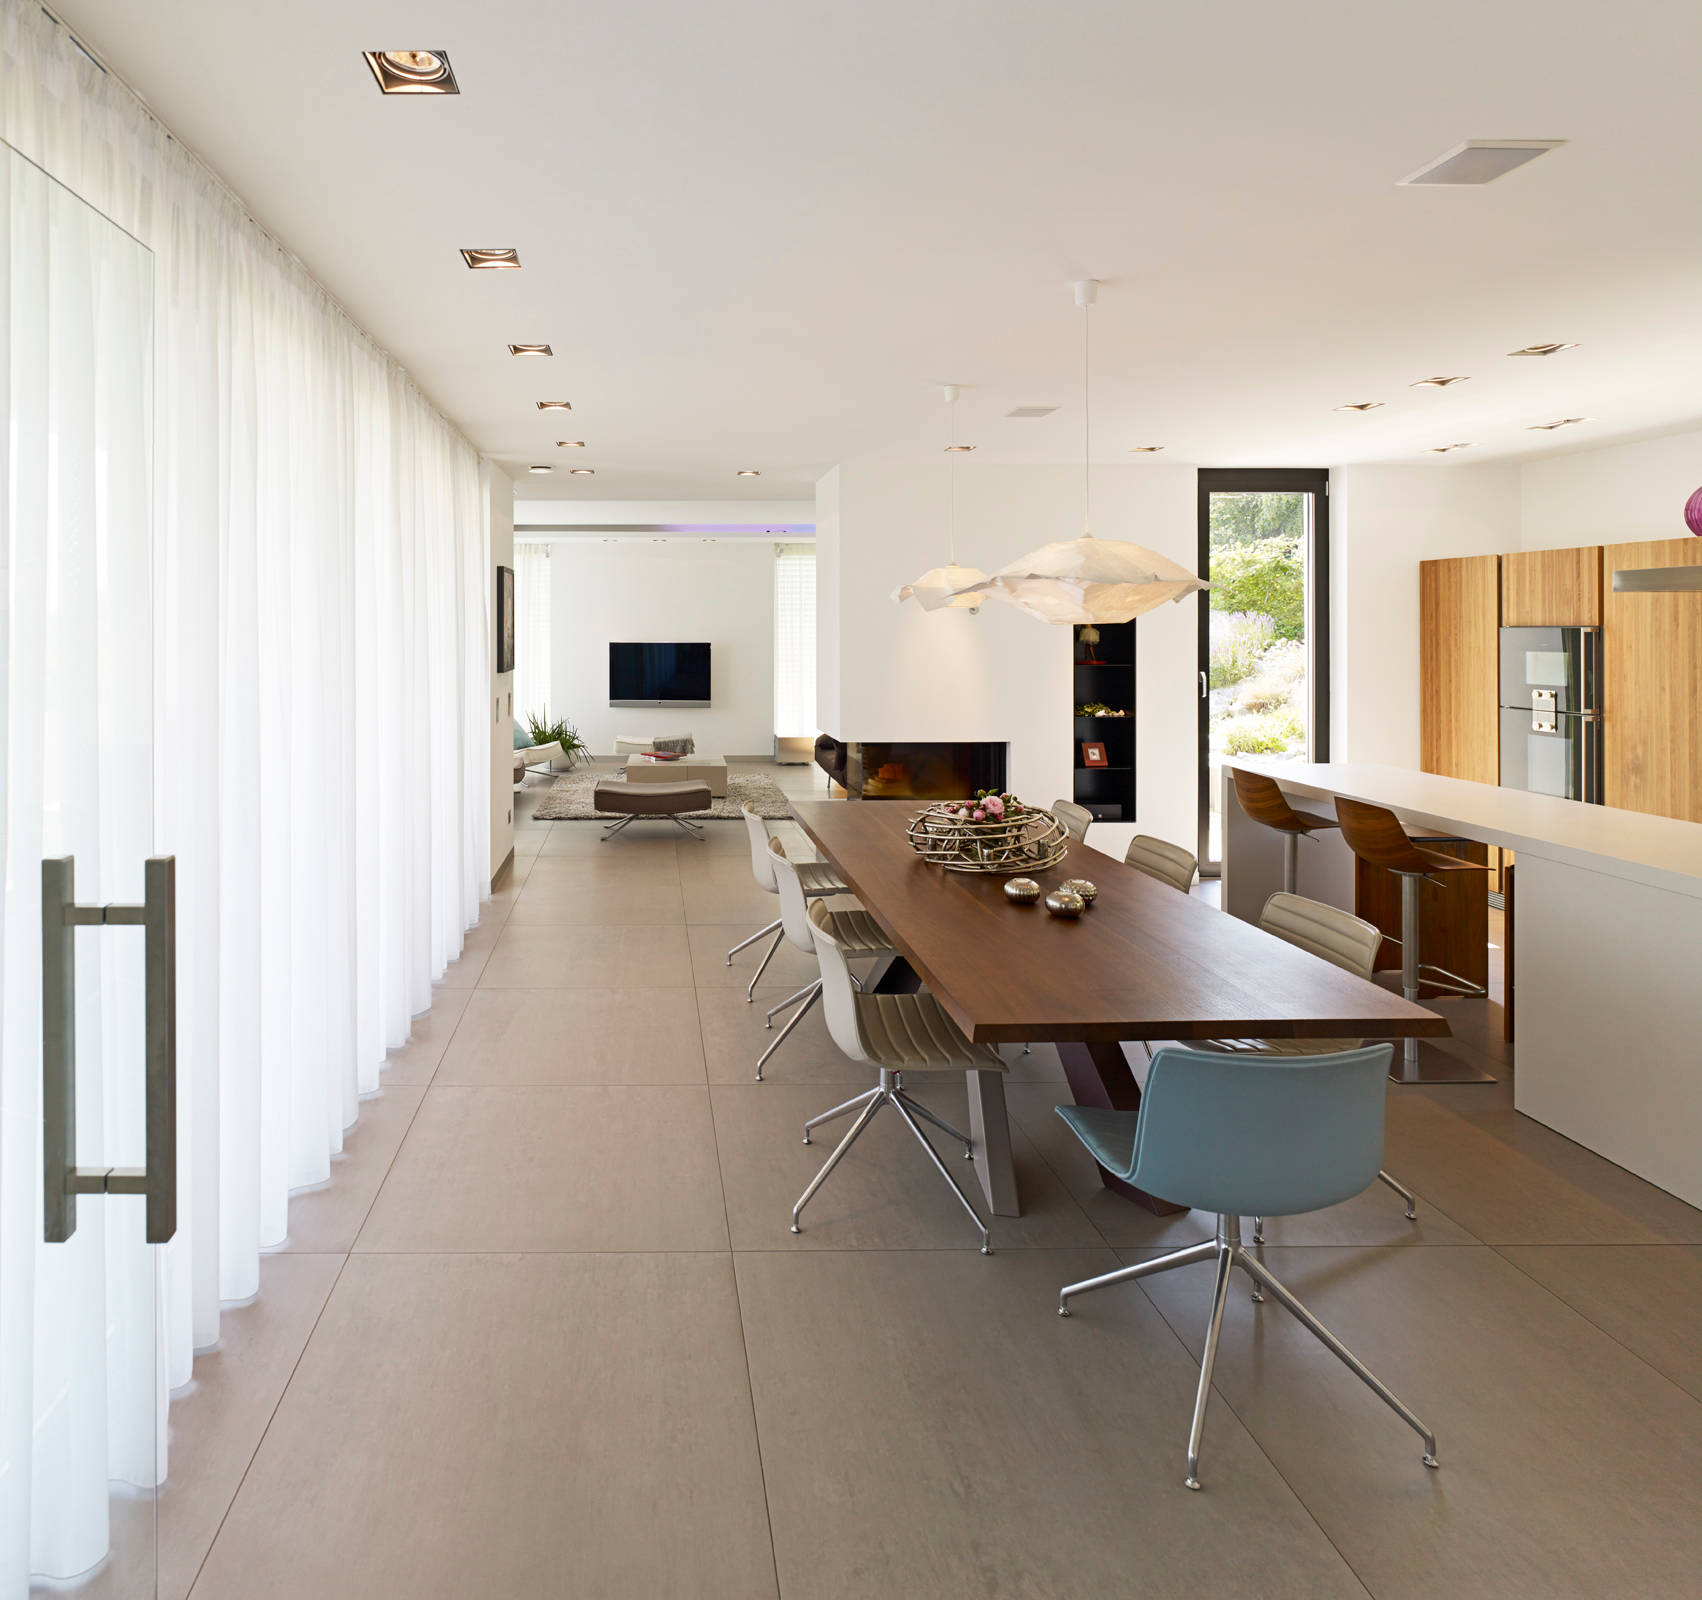 Ultra Modern Kitchen Designs You Must See Utterly Luxury: 18 Outstanding Modern Dining Room Designs For Your Modern Home